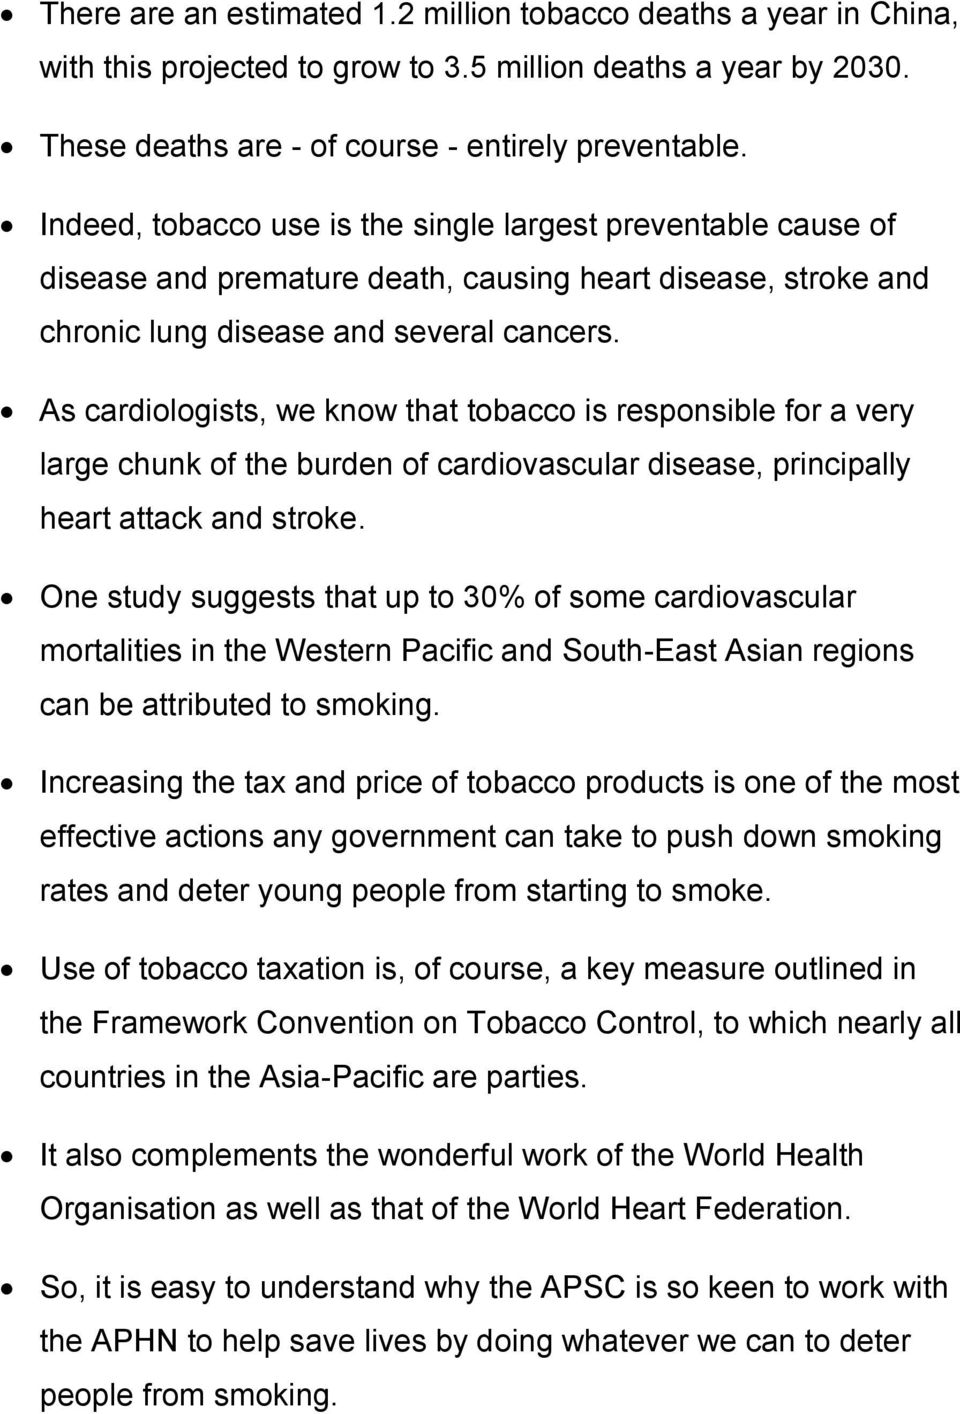 As cardiologists, we know that tobacco is responsible for a very large chunk of the burden of cardiovascular disease, principally heart attack and stroke.